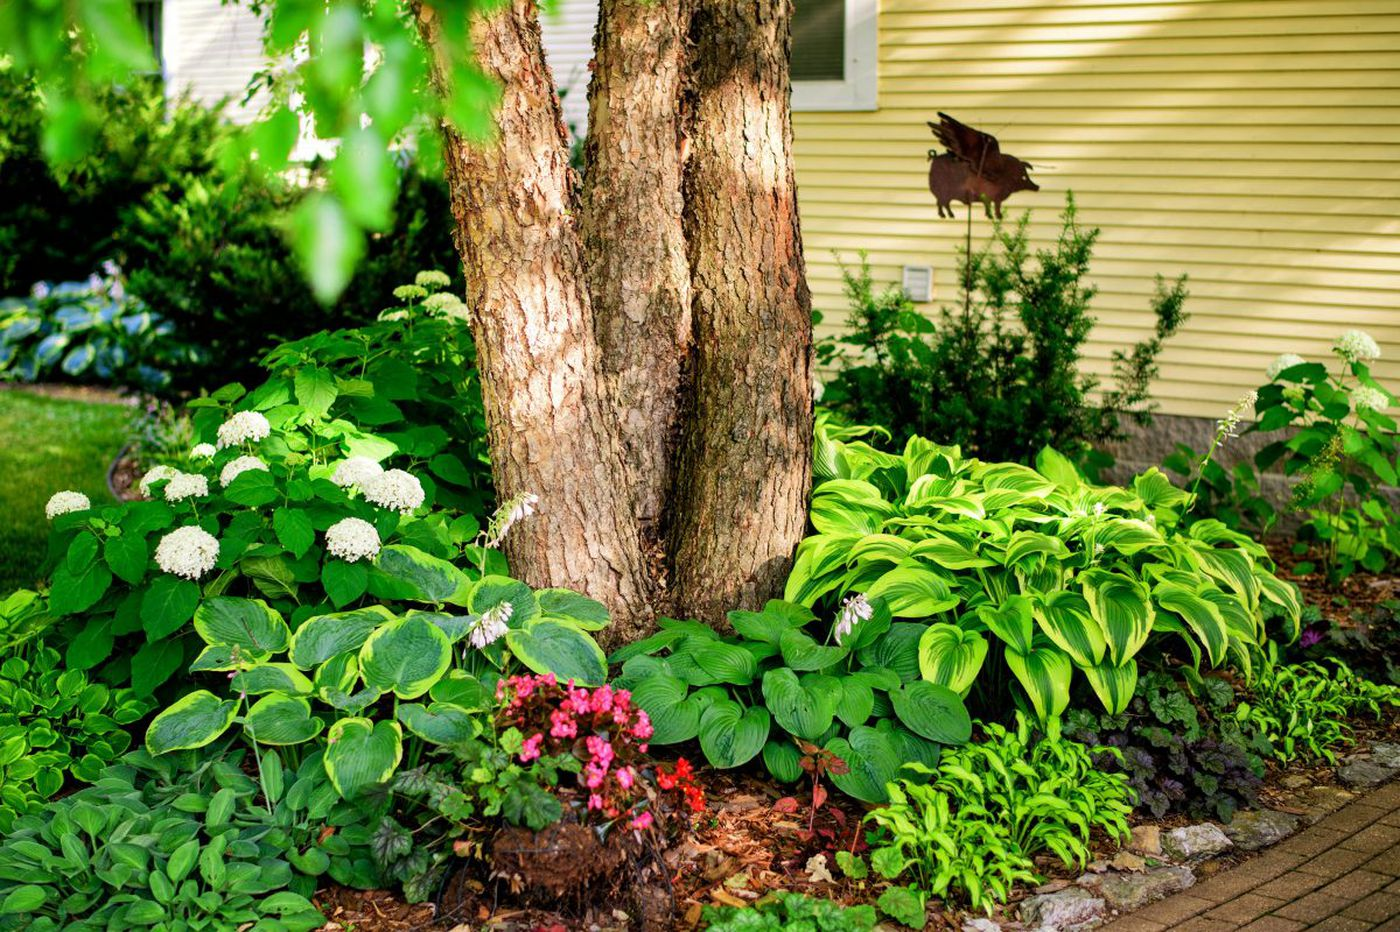 Sept. 15-21: In the garden, it's time to…